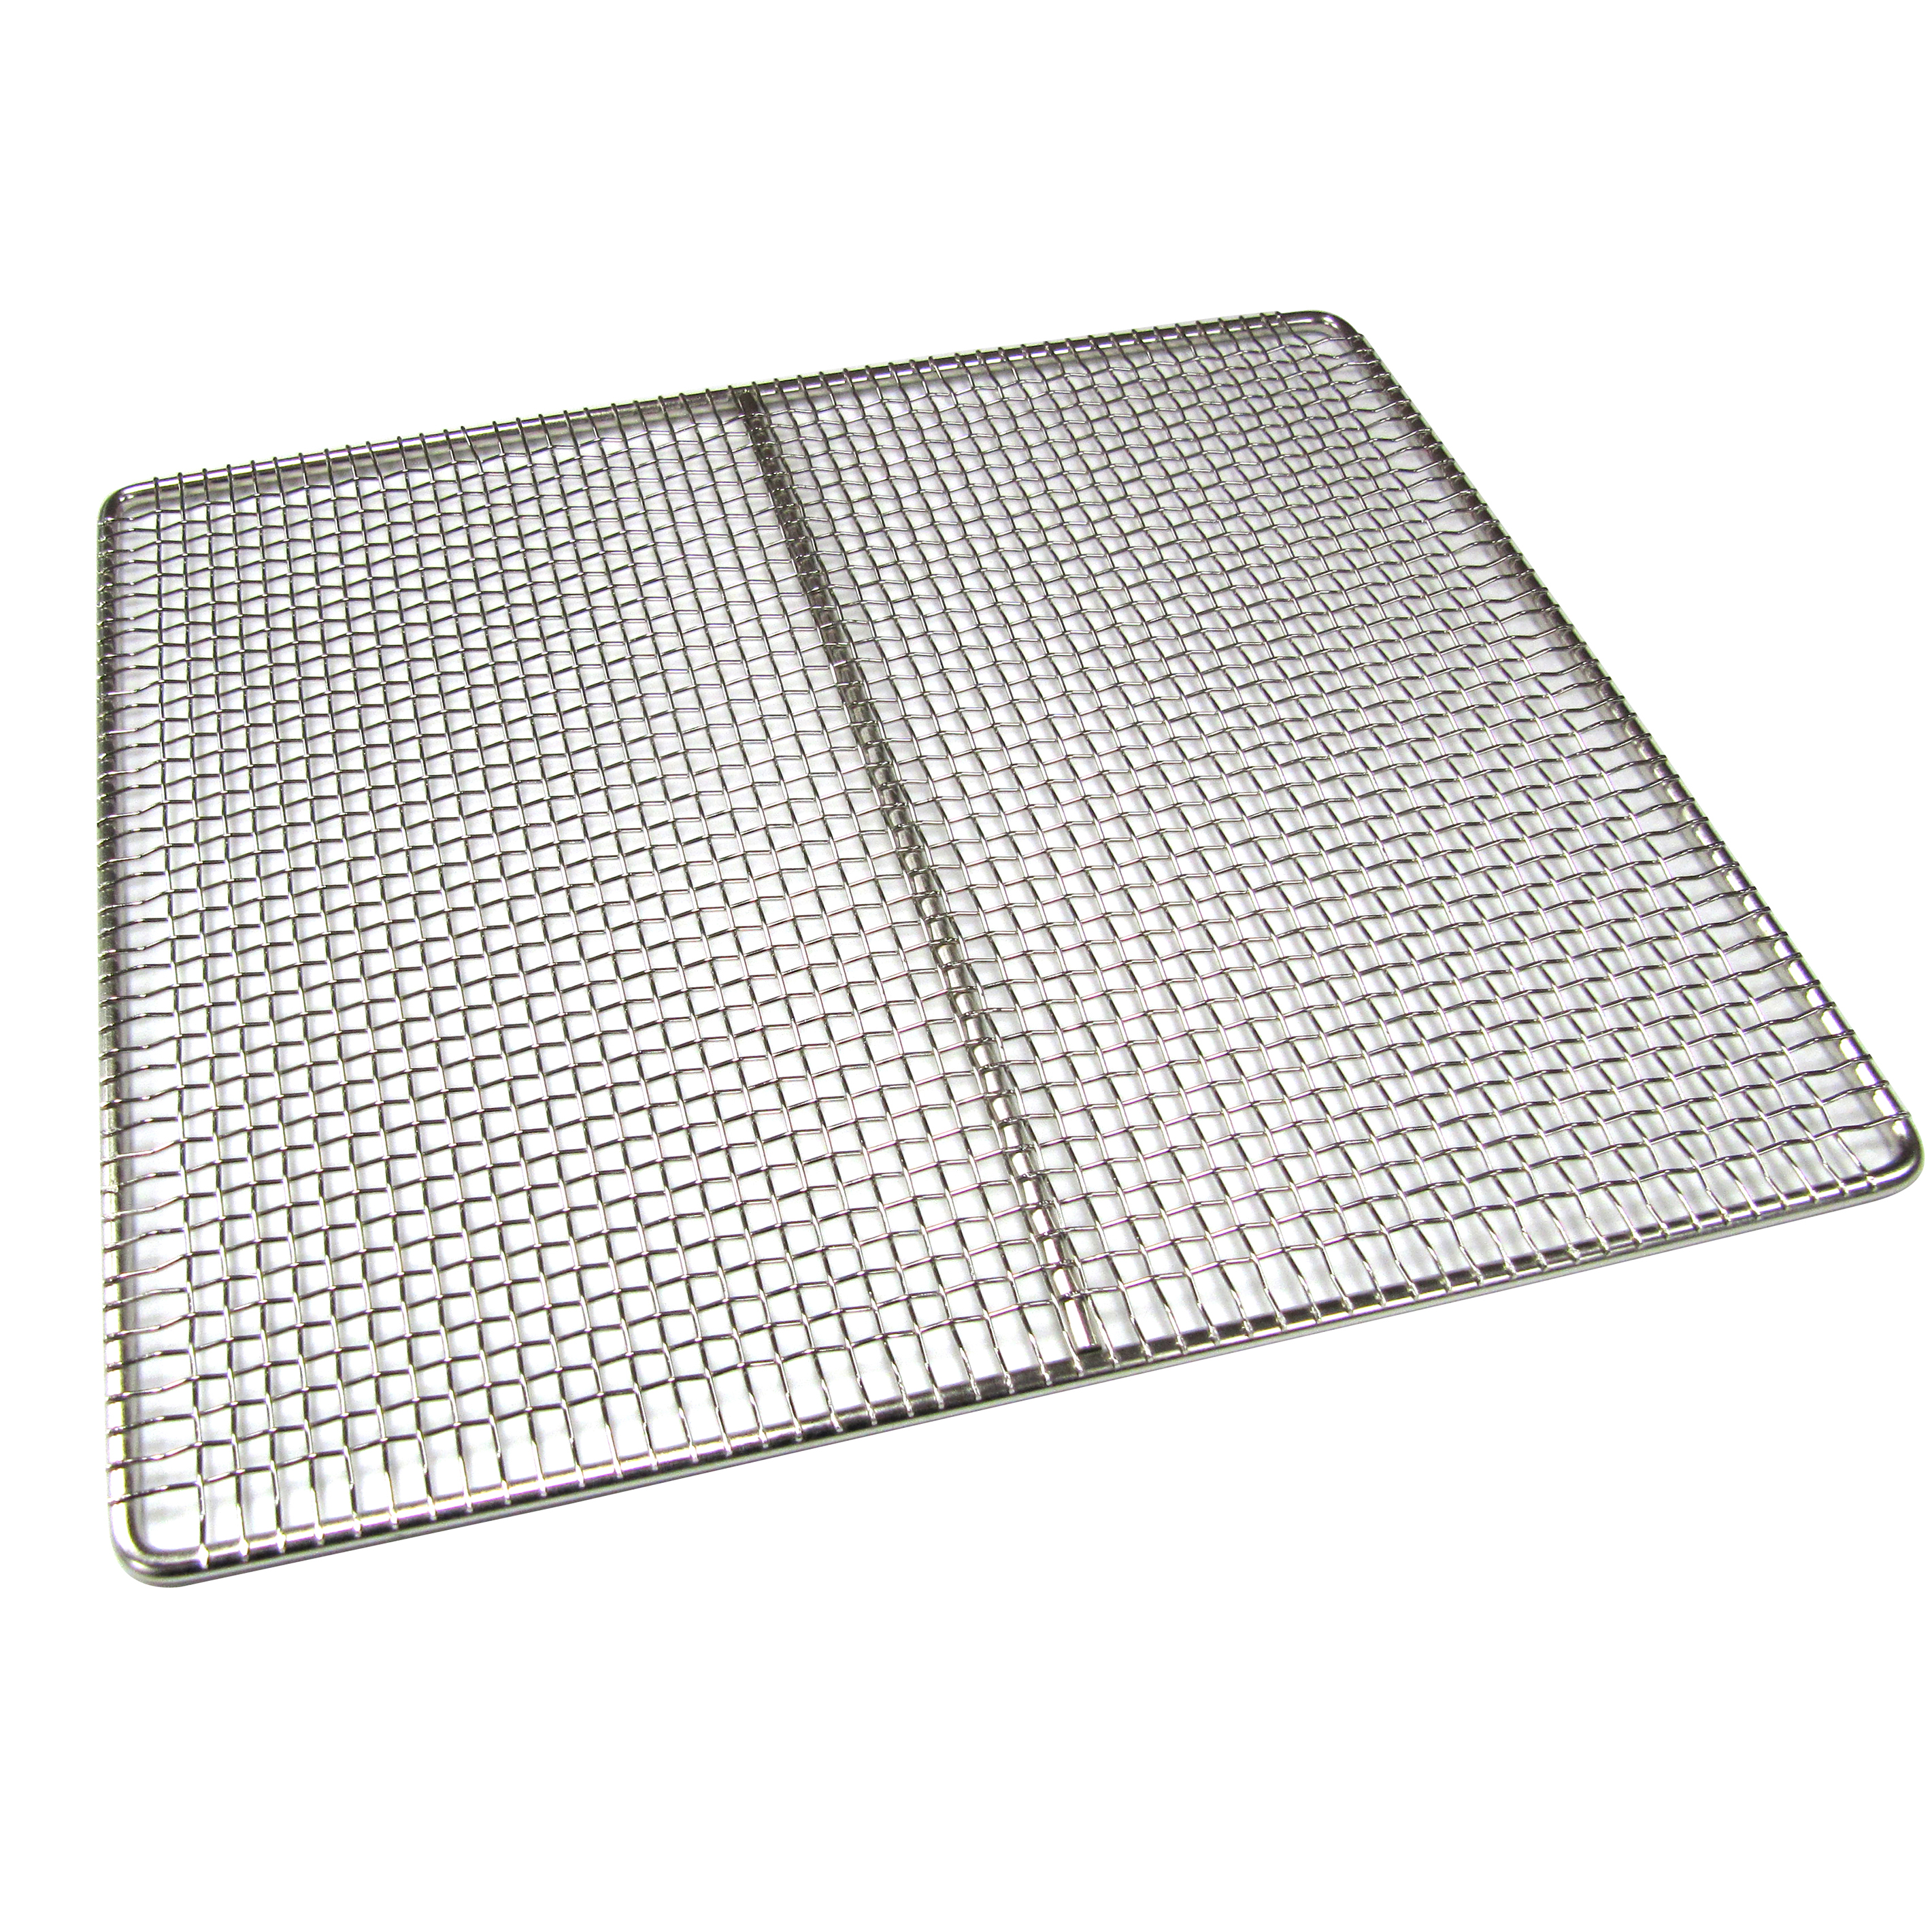 Admiral Craft GR-1914H tube screen grate